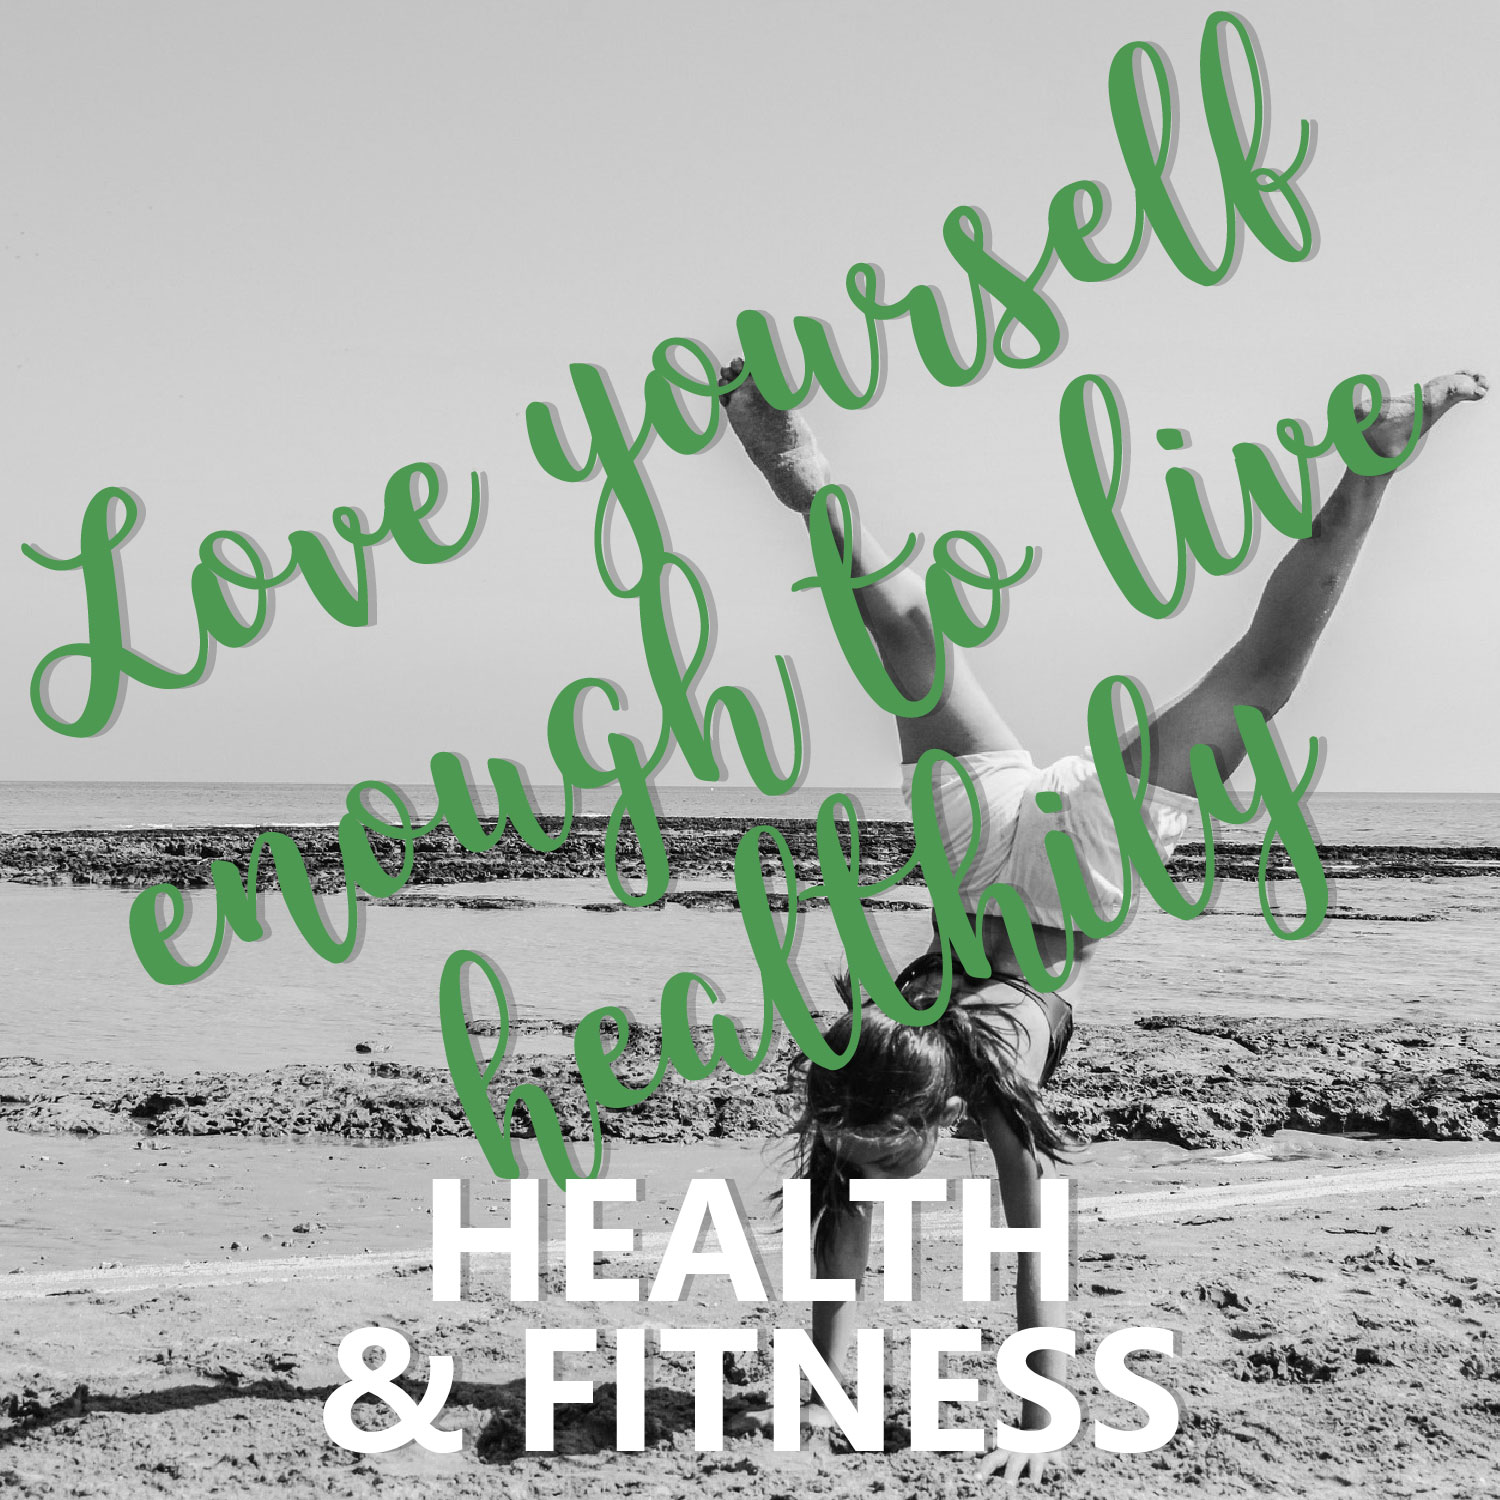 18 HEALTH FITNESS - Health and Fitness